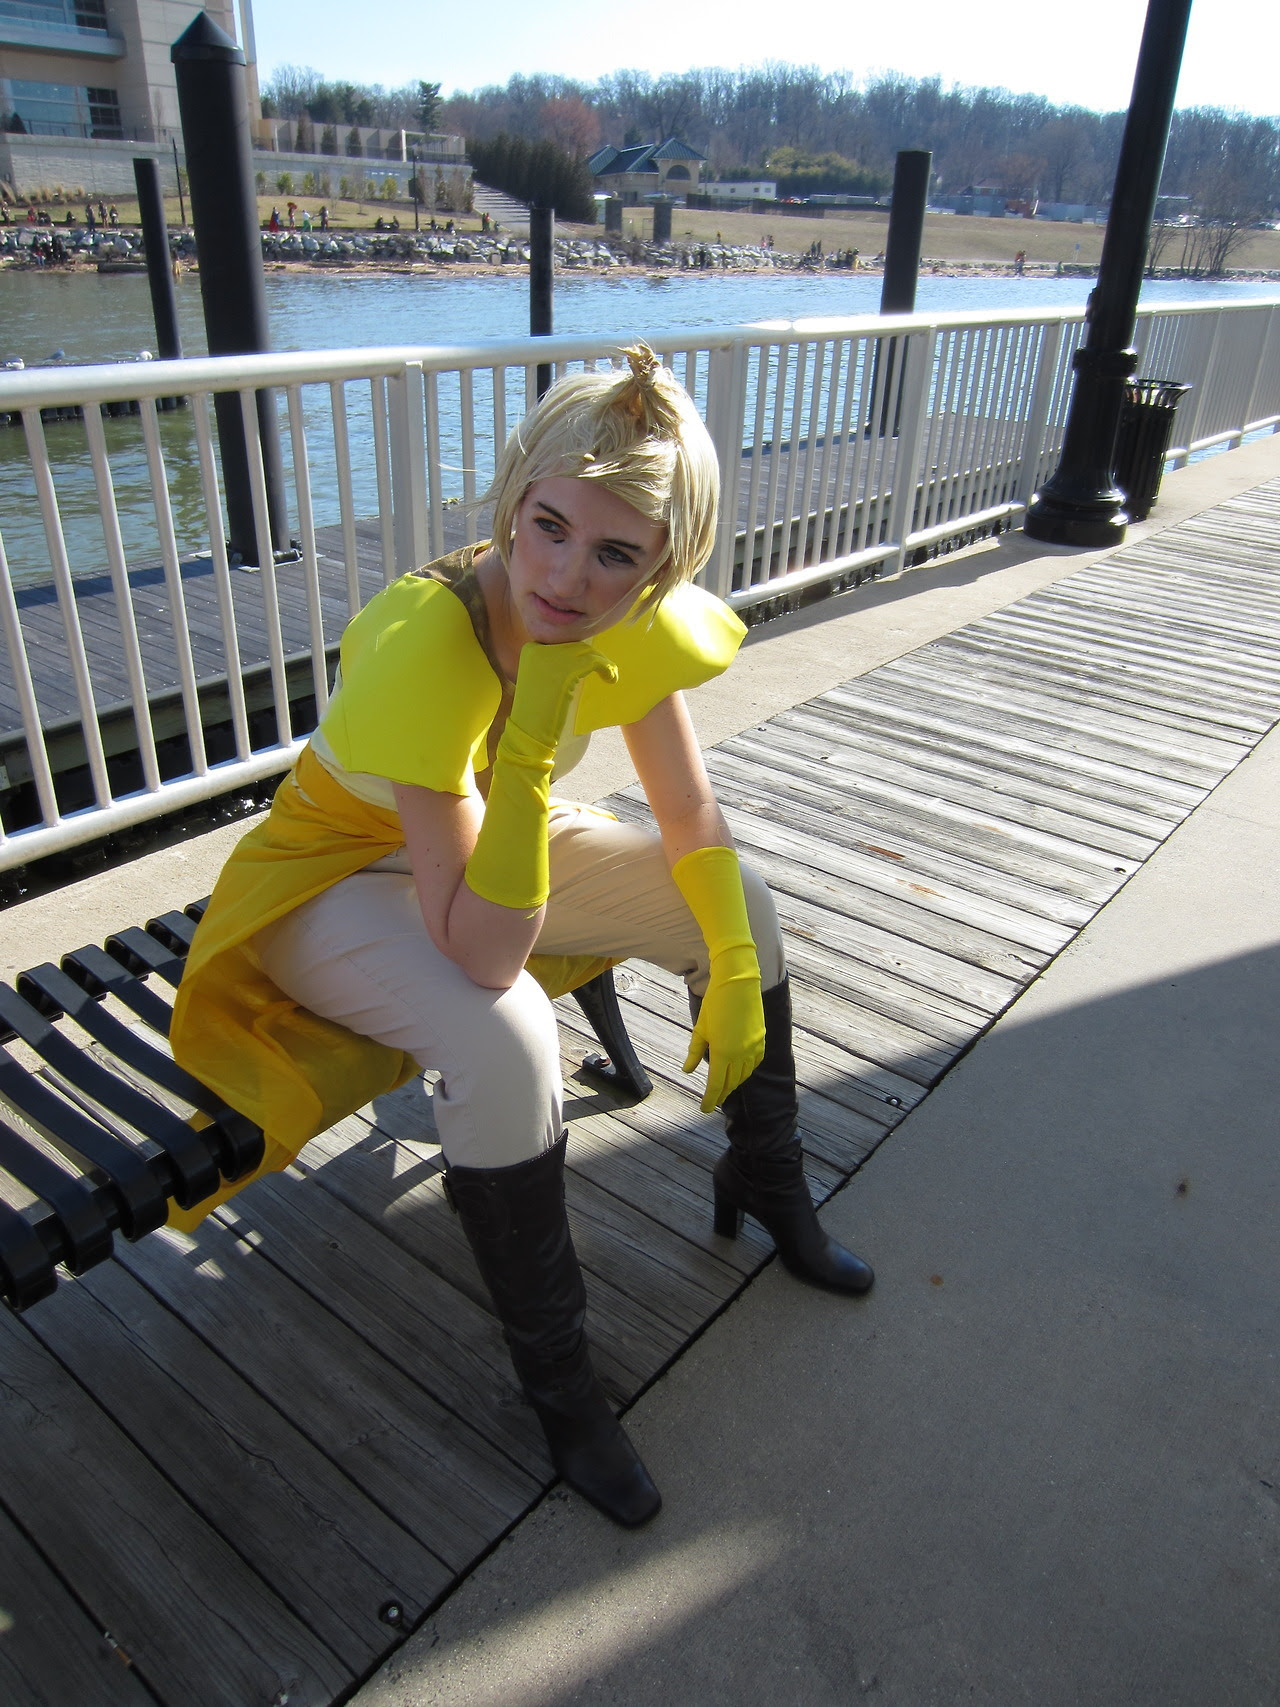 My Yellow Diamond cosplay from Katsucon today! Featuring Yellow going progressively more bonkers as Blue just won't stop being sad, until she finally has to go sit on a bench and stew it over.